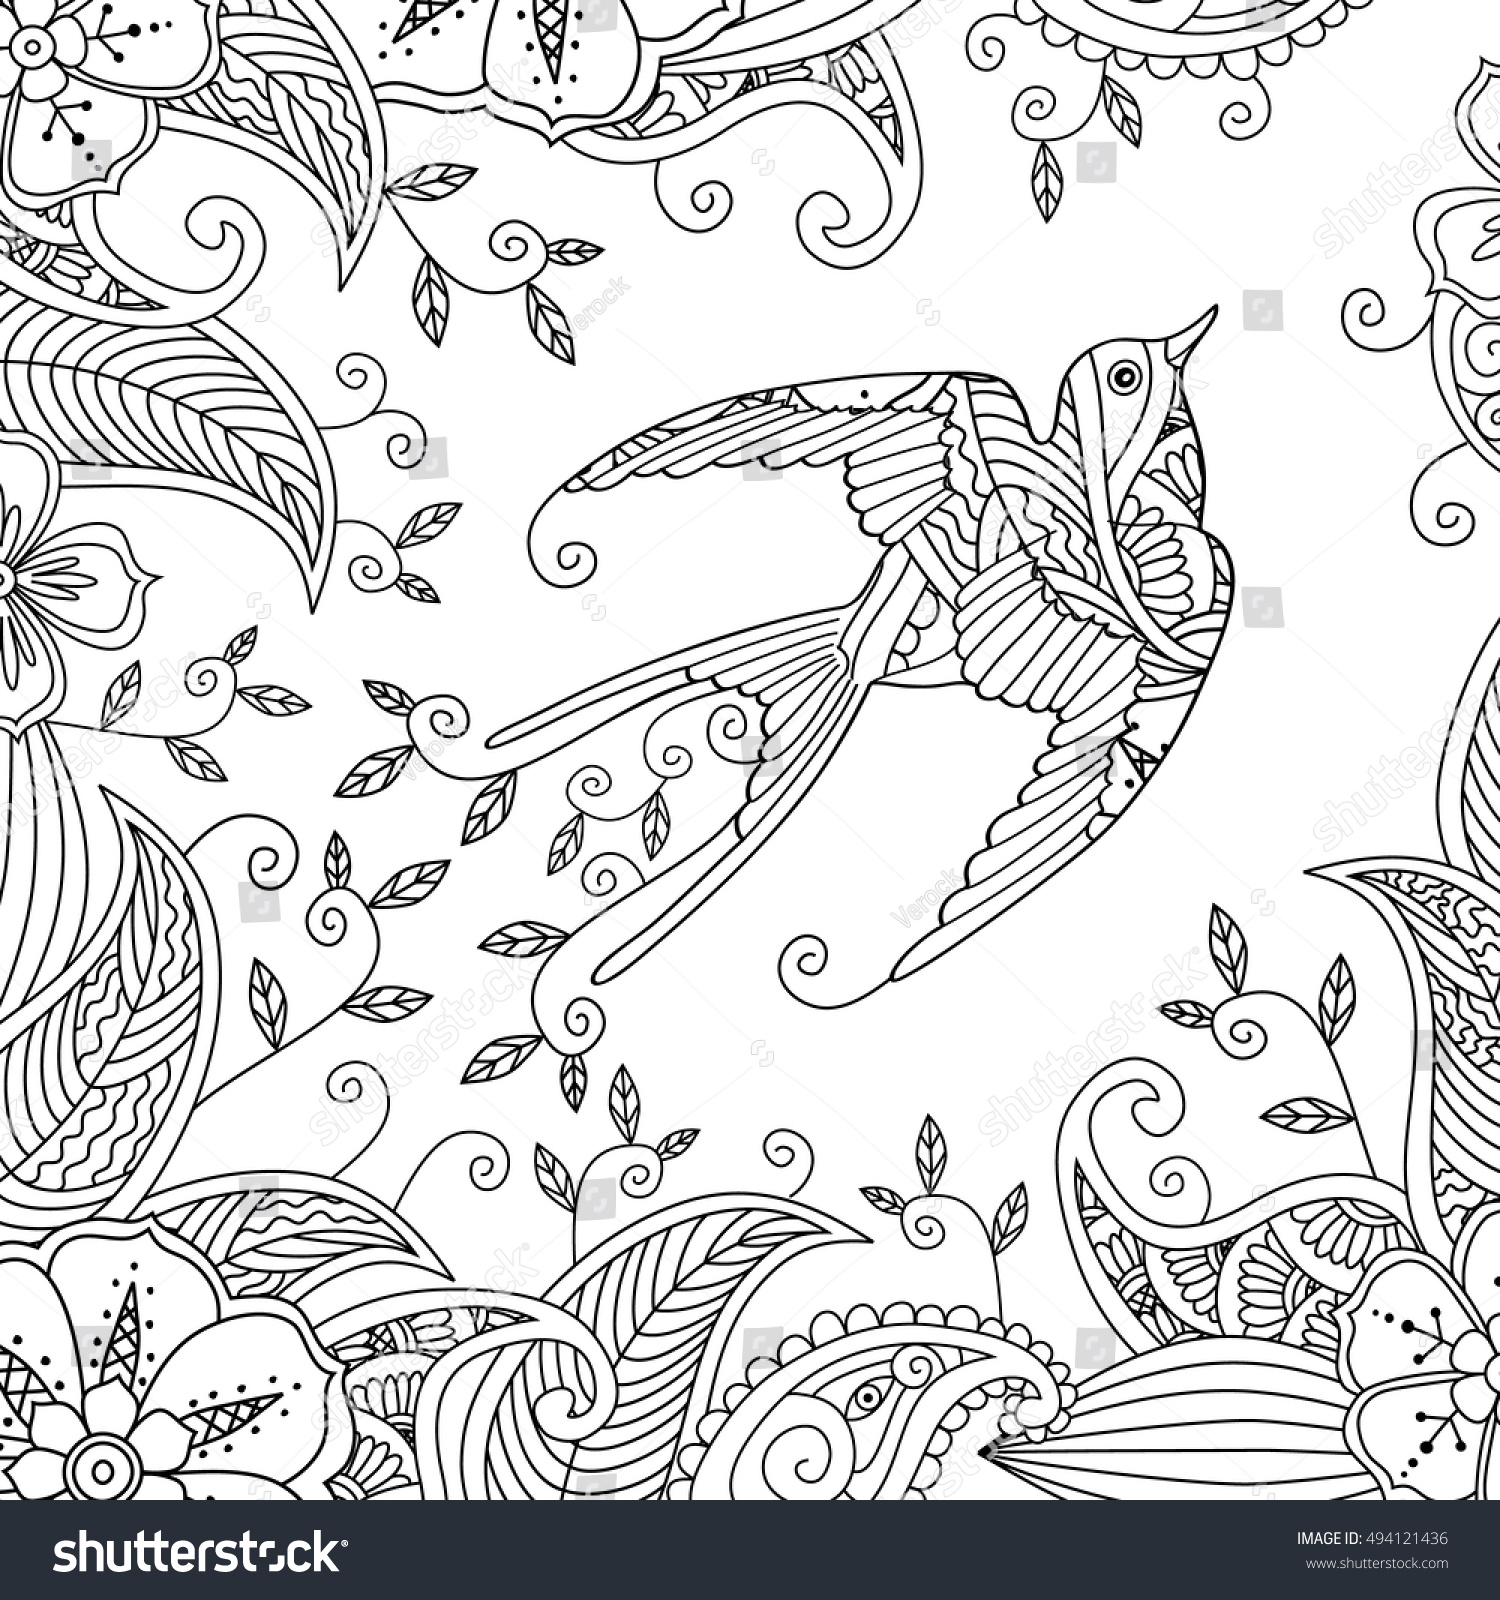 100 bird flying coloring page free heron coloring pages eagles